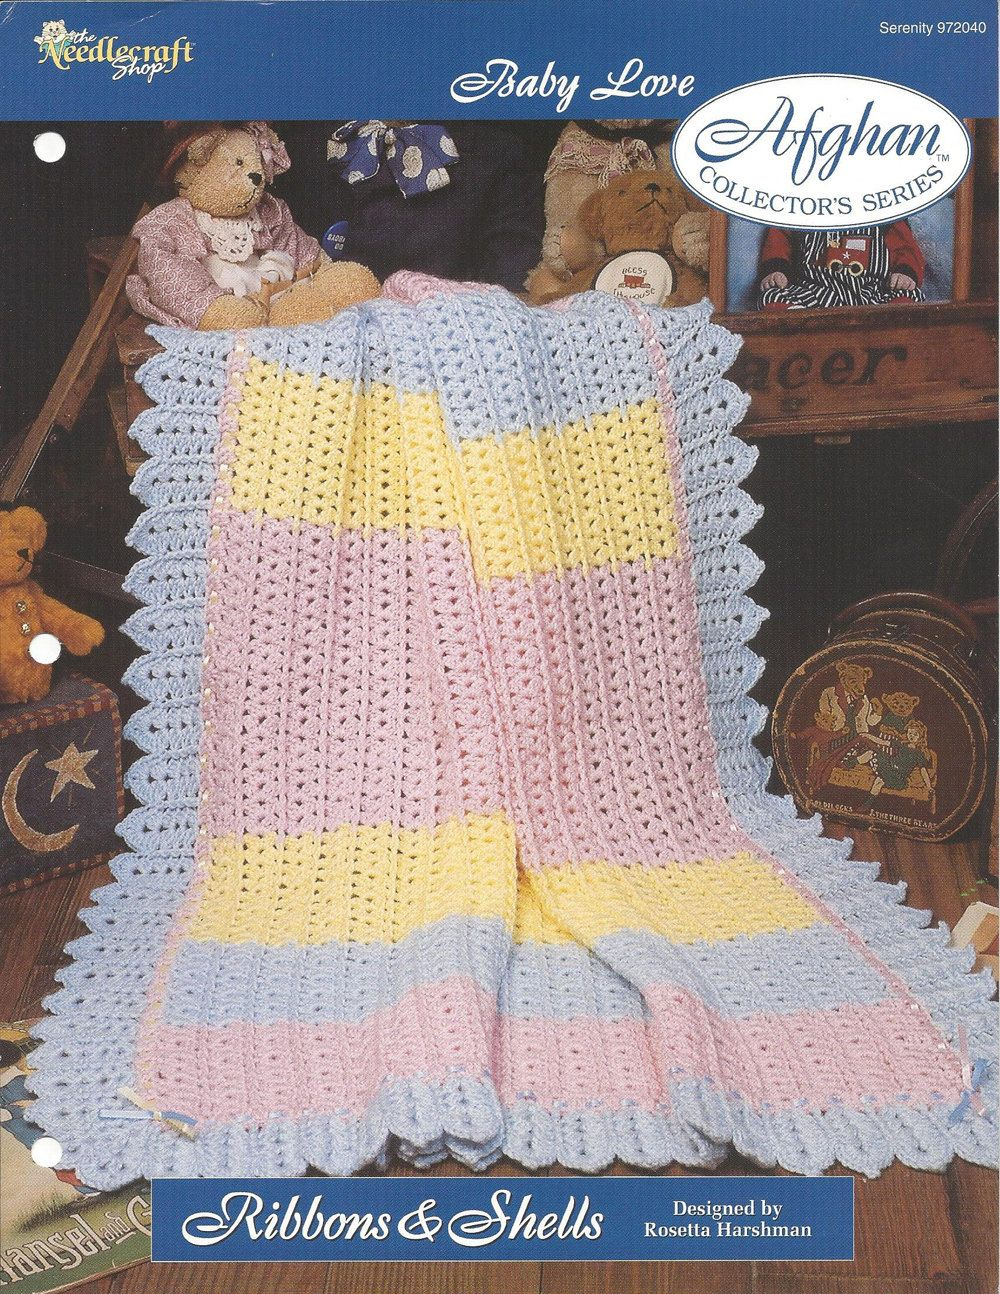 Crochet baby afghan pattern nursery decor by knitknackscreations crochet baby afghan pattern nursery decor bedding crib blanket baby wrap blanket baby love the needlecraft shop ribbons shells dt1010fo